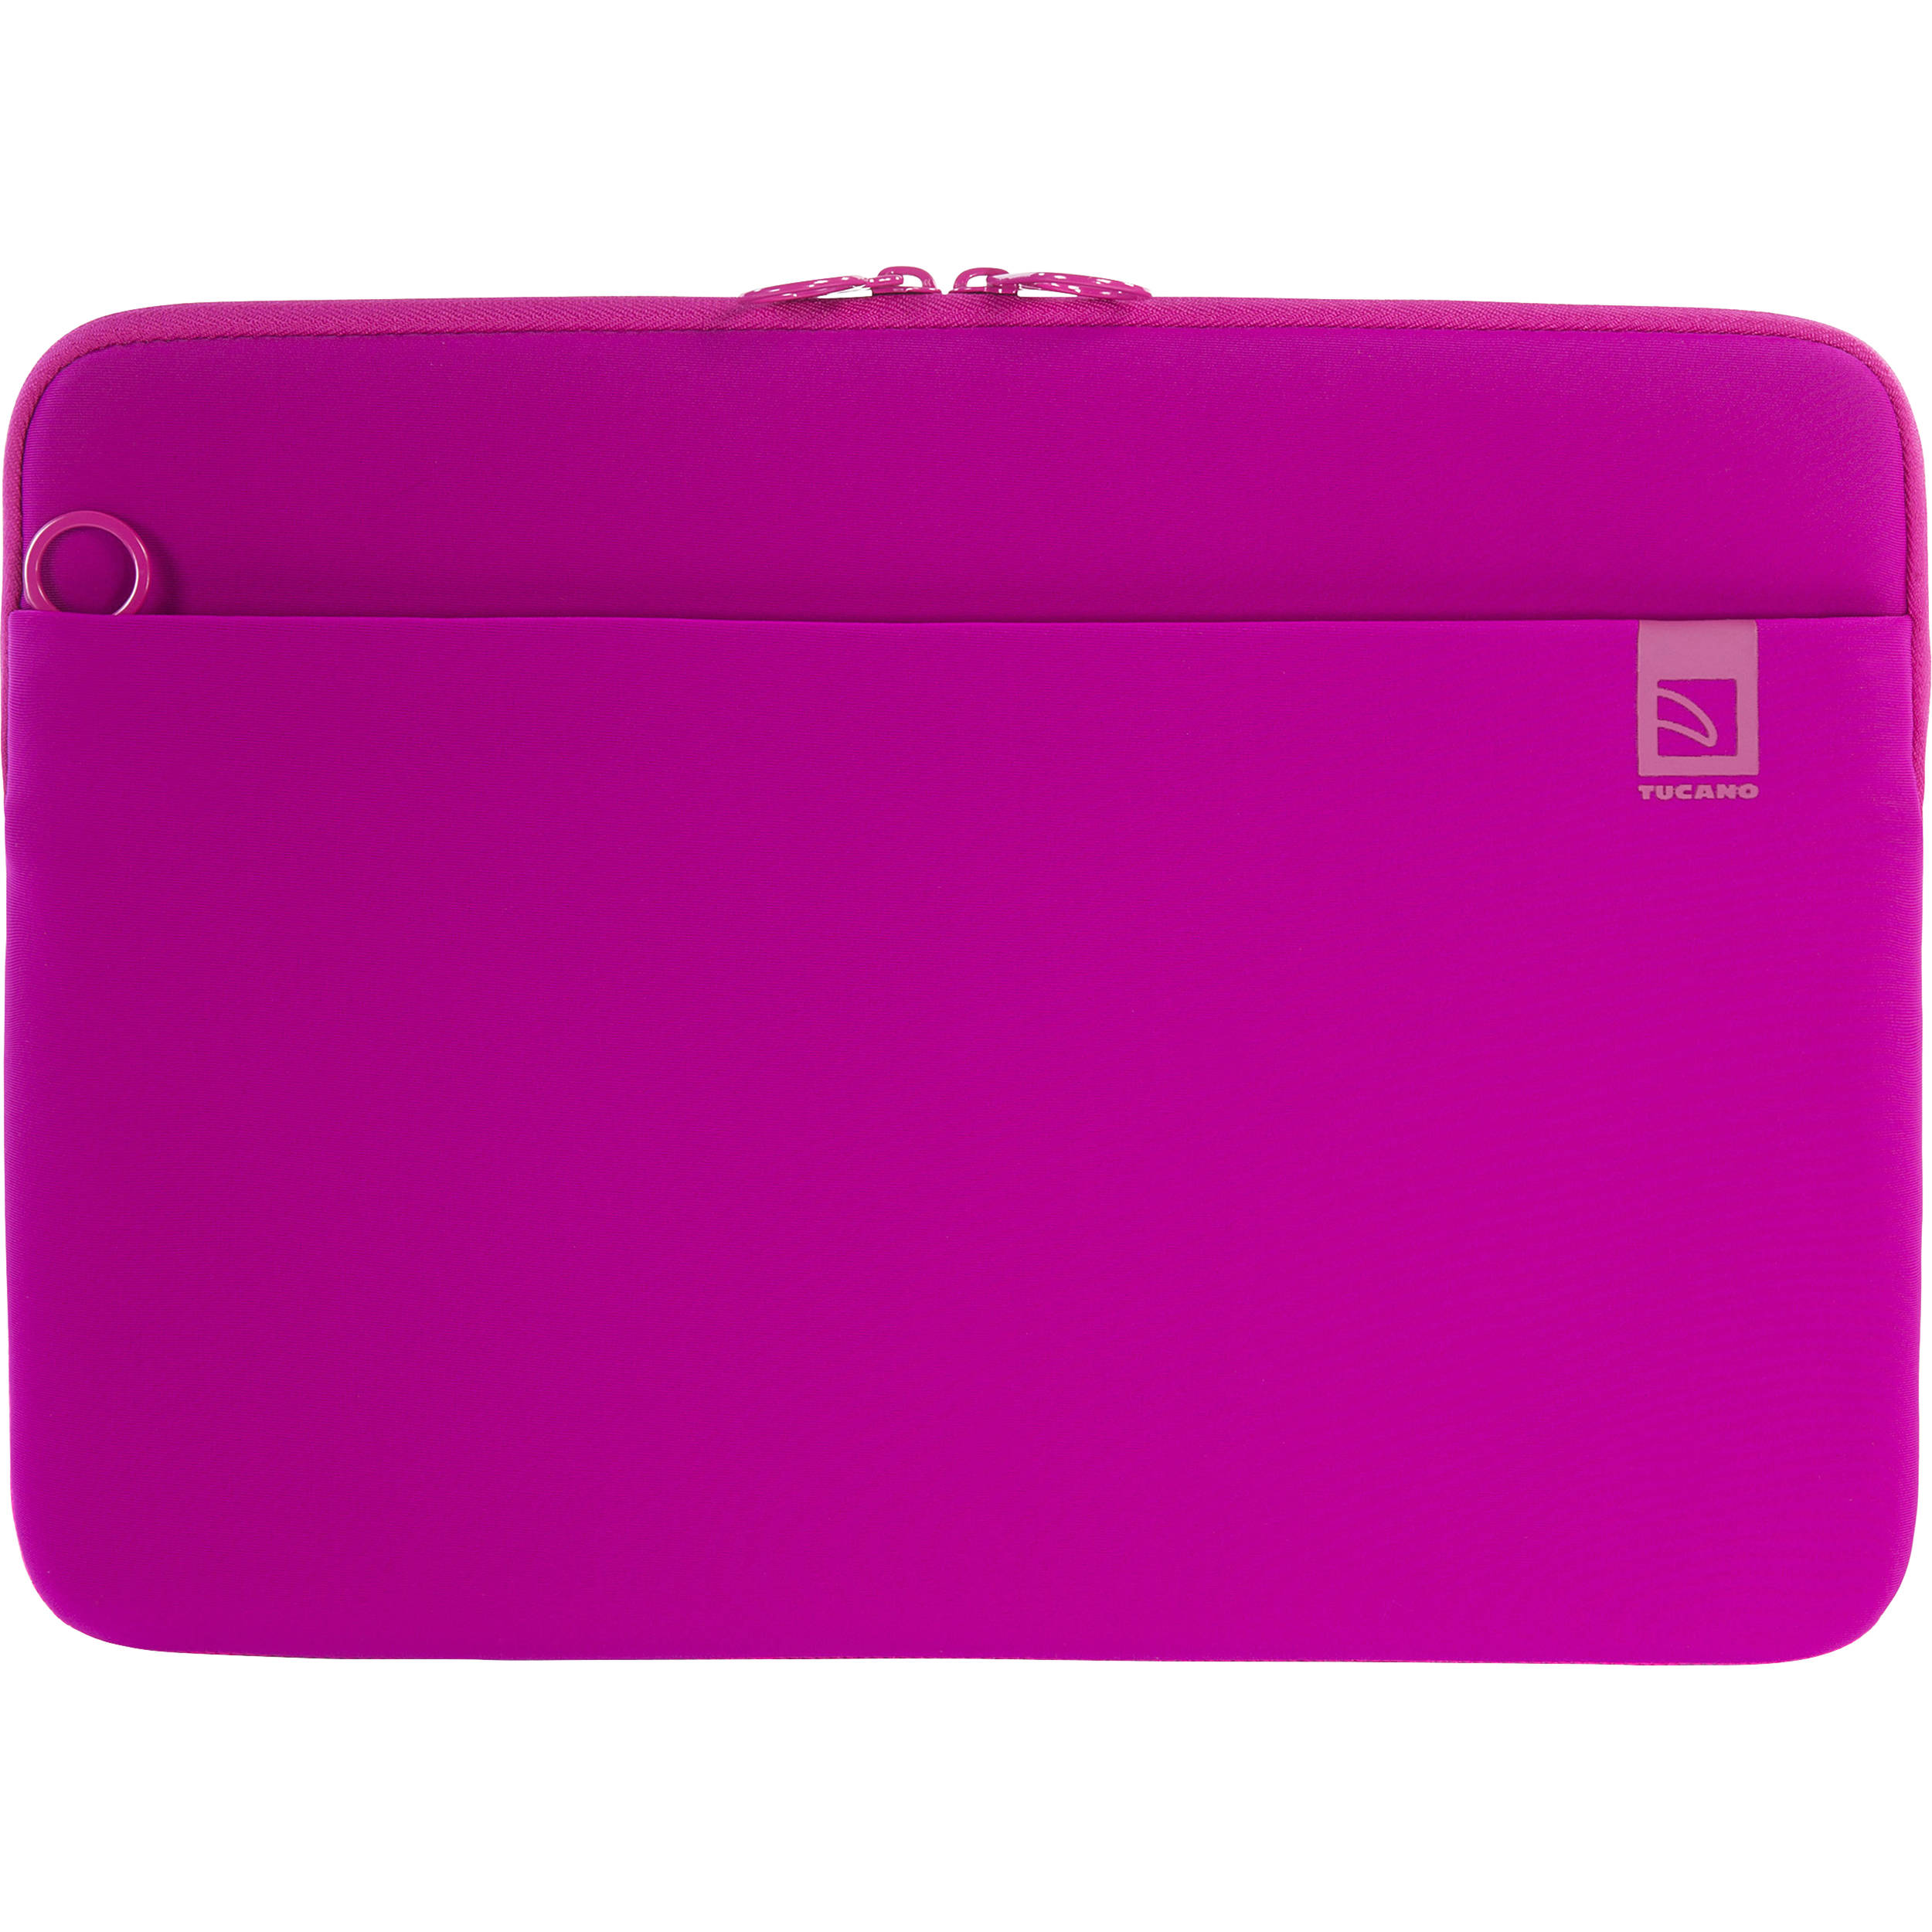 Tucano Top Neoprene Sleeve For Macbook Pro 15